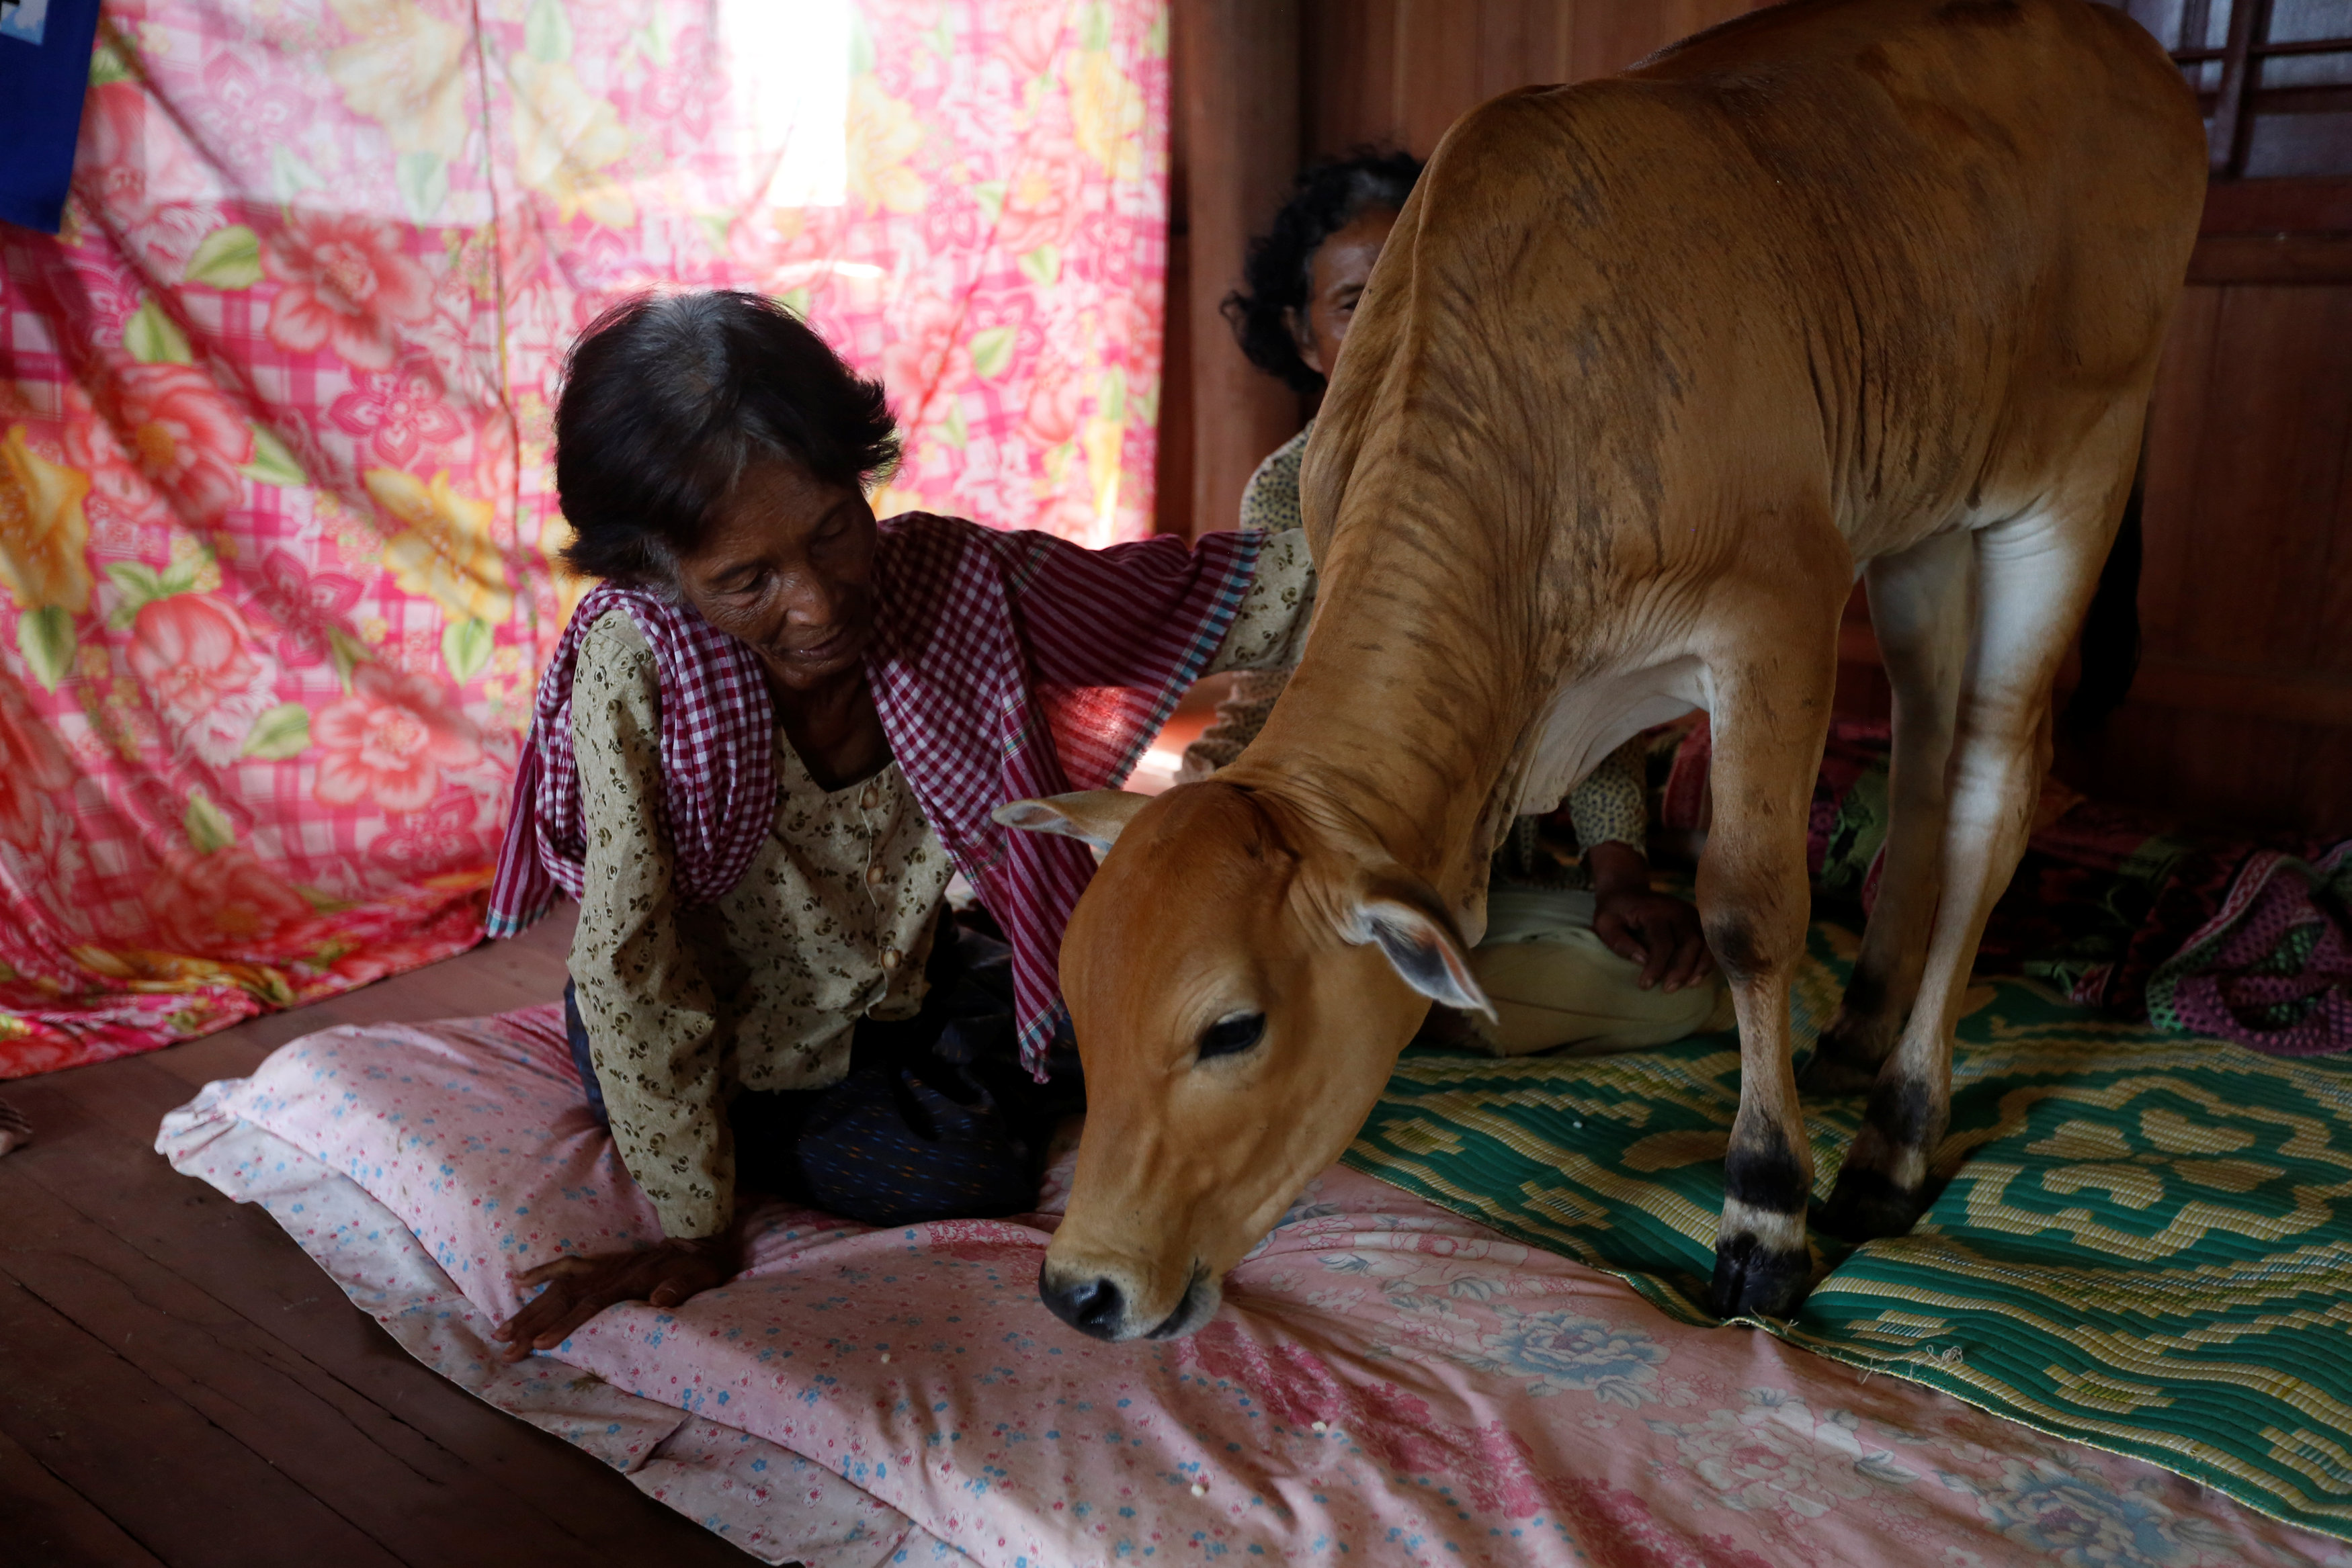 Khim Hang, 74, sits in her bedroom with a cow which she believes is her reborn husband in Kratie province, Cambodia, July 18, 2017. REUTERS/Samrang Pring